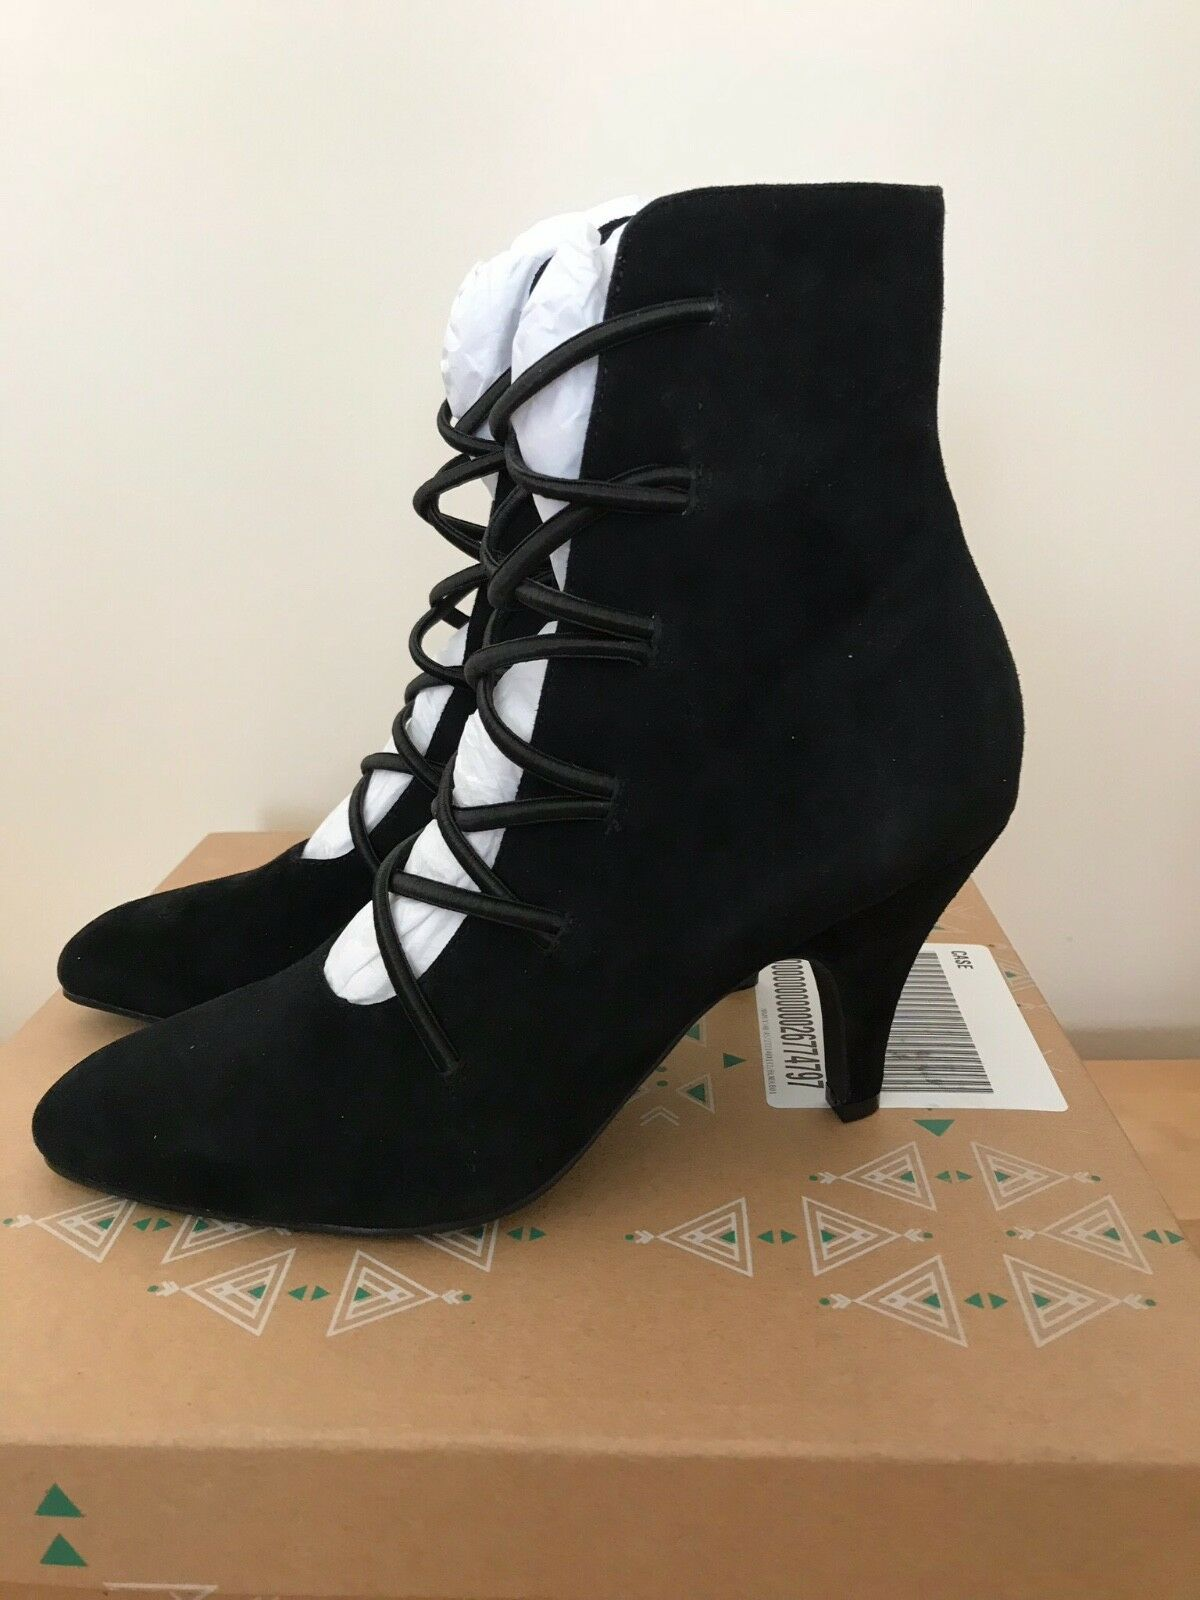 Brand New Black Suede Ankle Boots By Farylrobin At Free People Size 4(37) Boxed